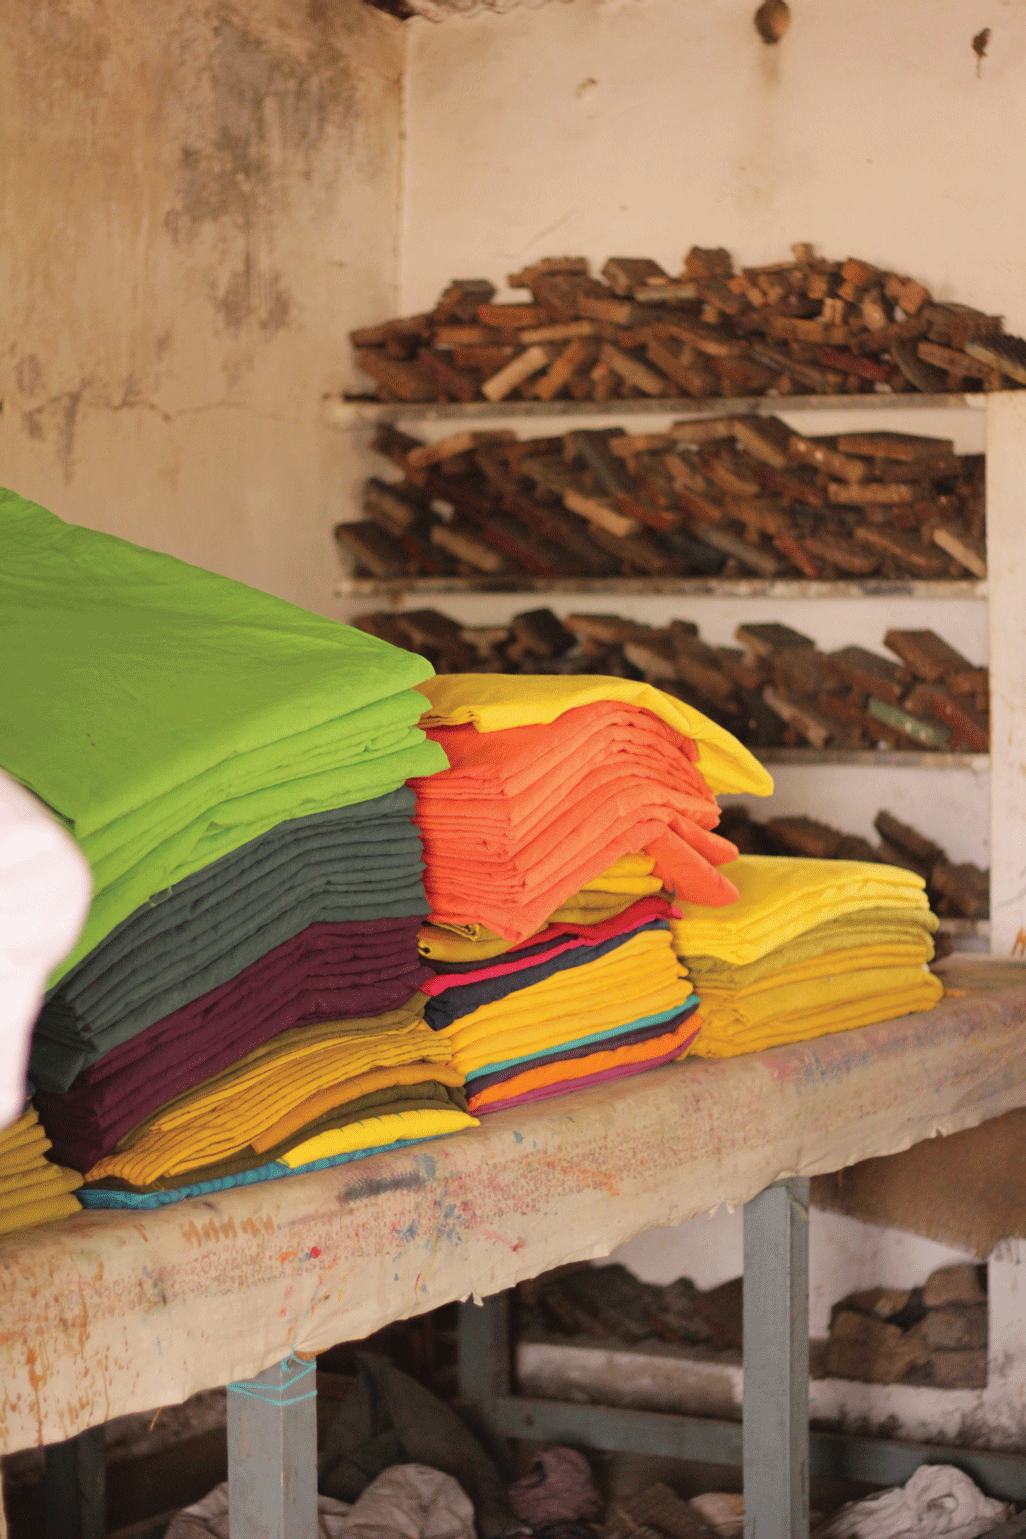 Chemically dyed fabric ready for direct printing